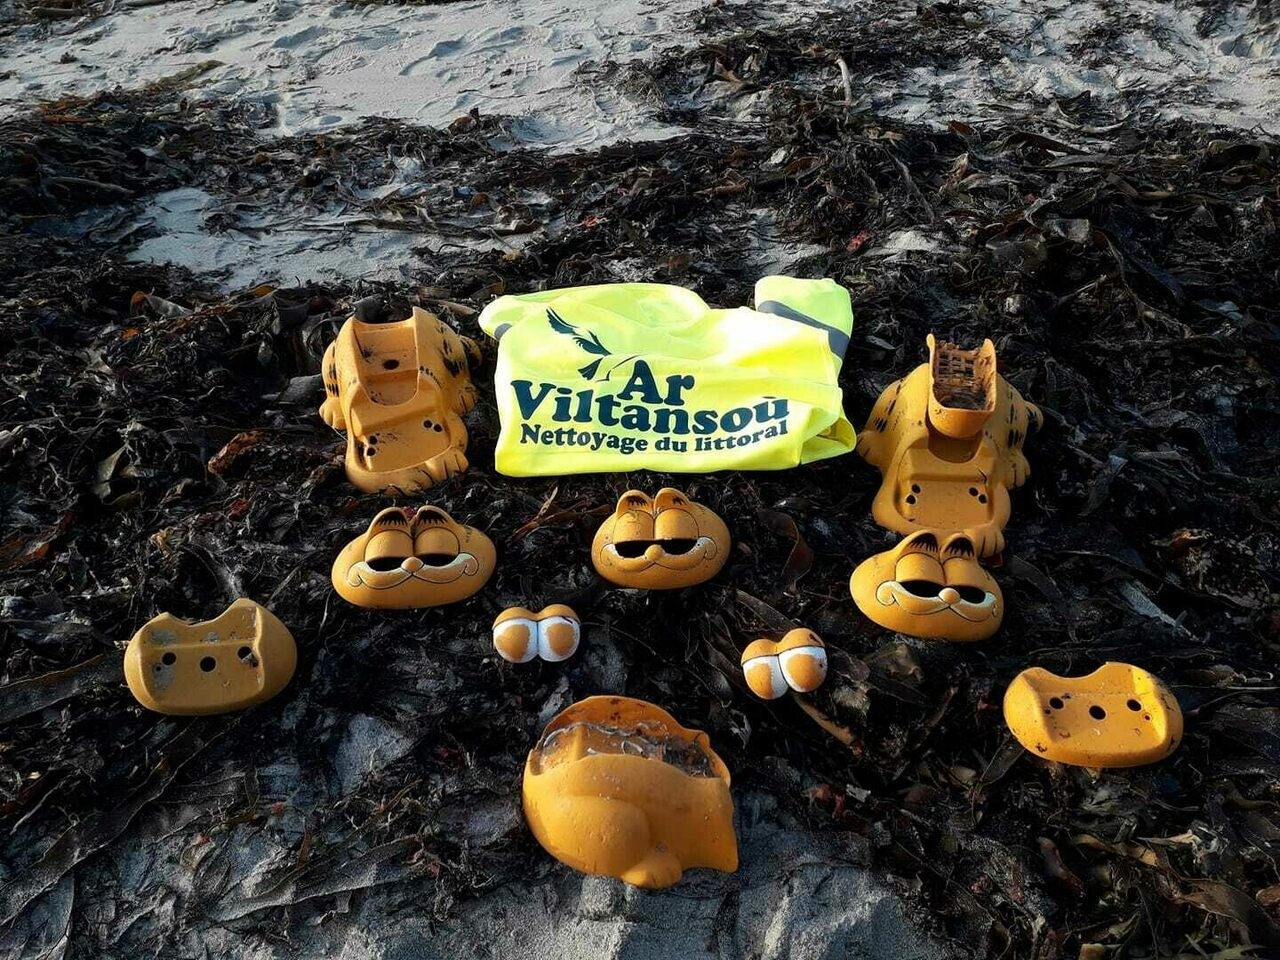 Pieces of these phones have been washing up on a Brittany beach for more than 30 years.